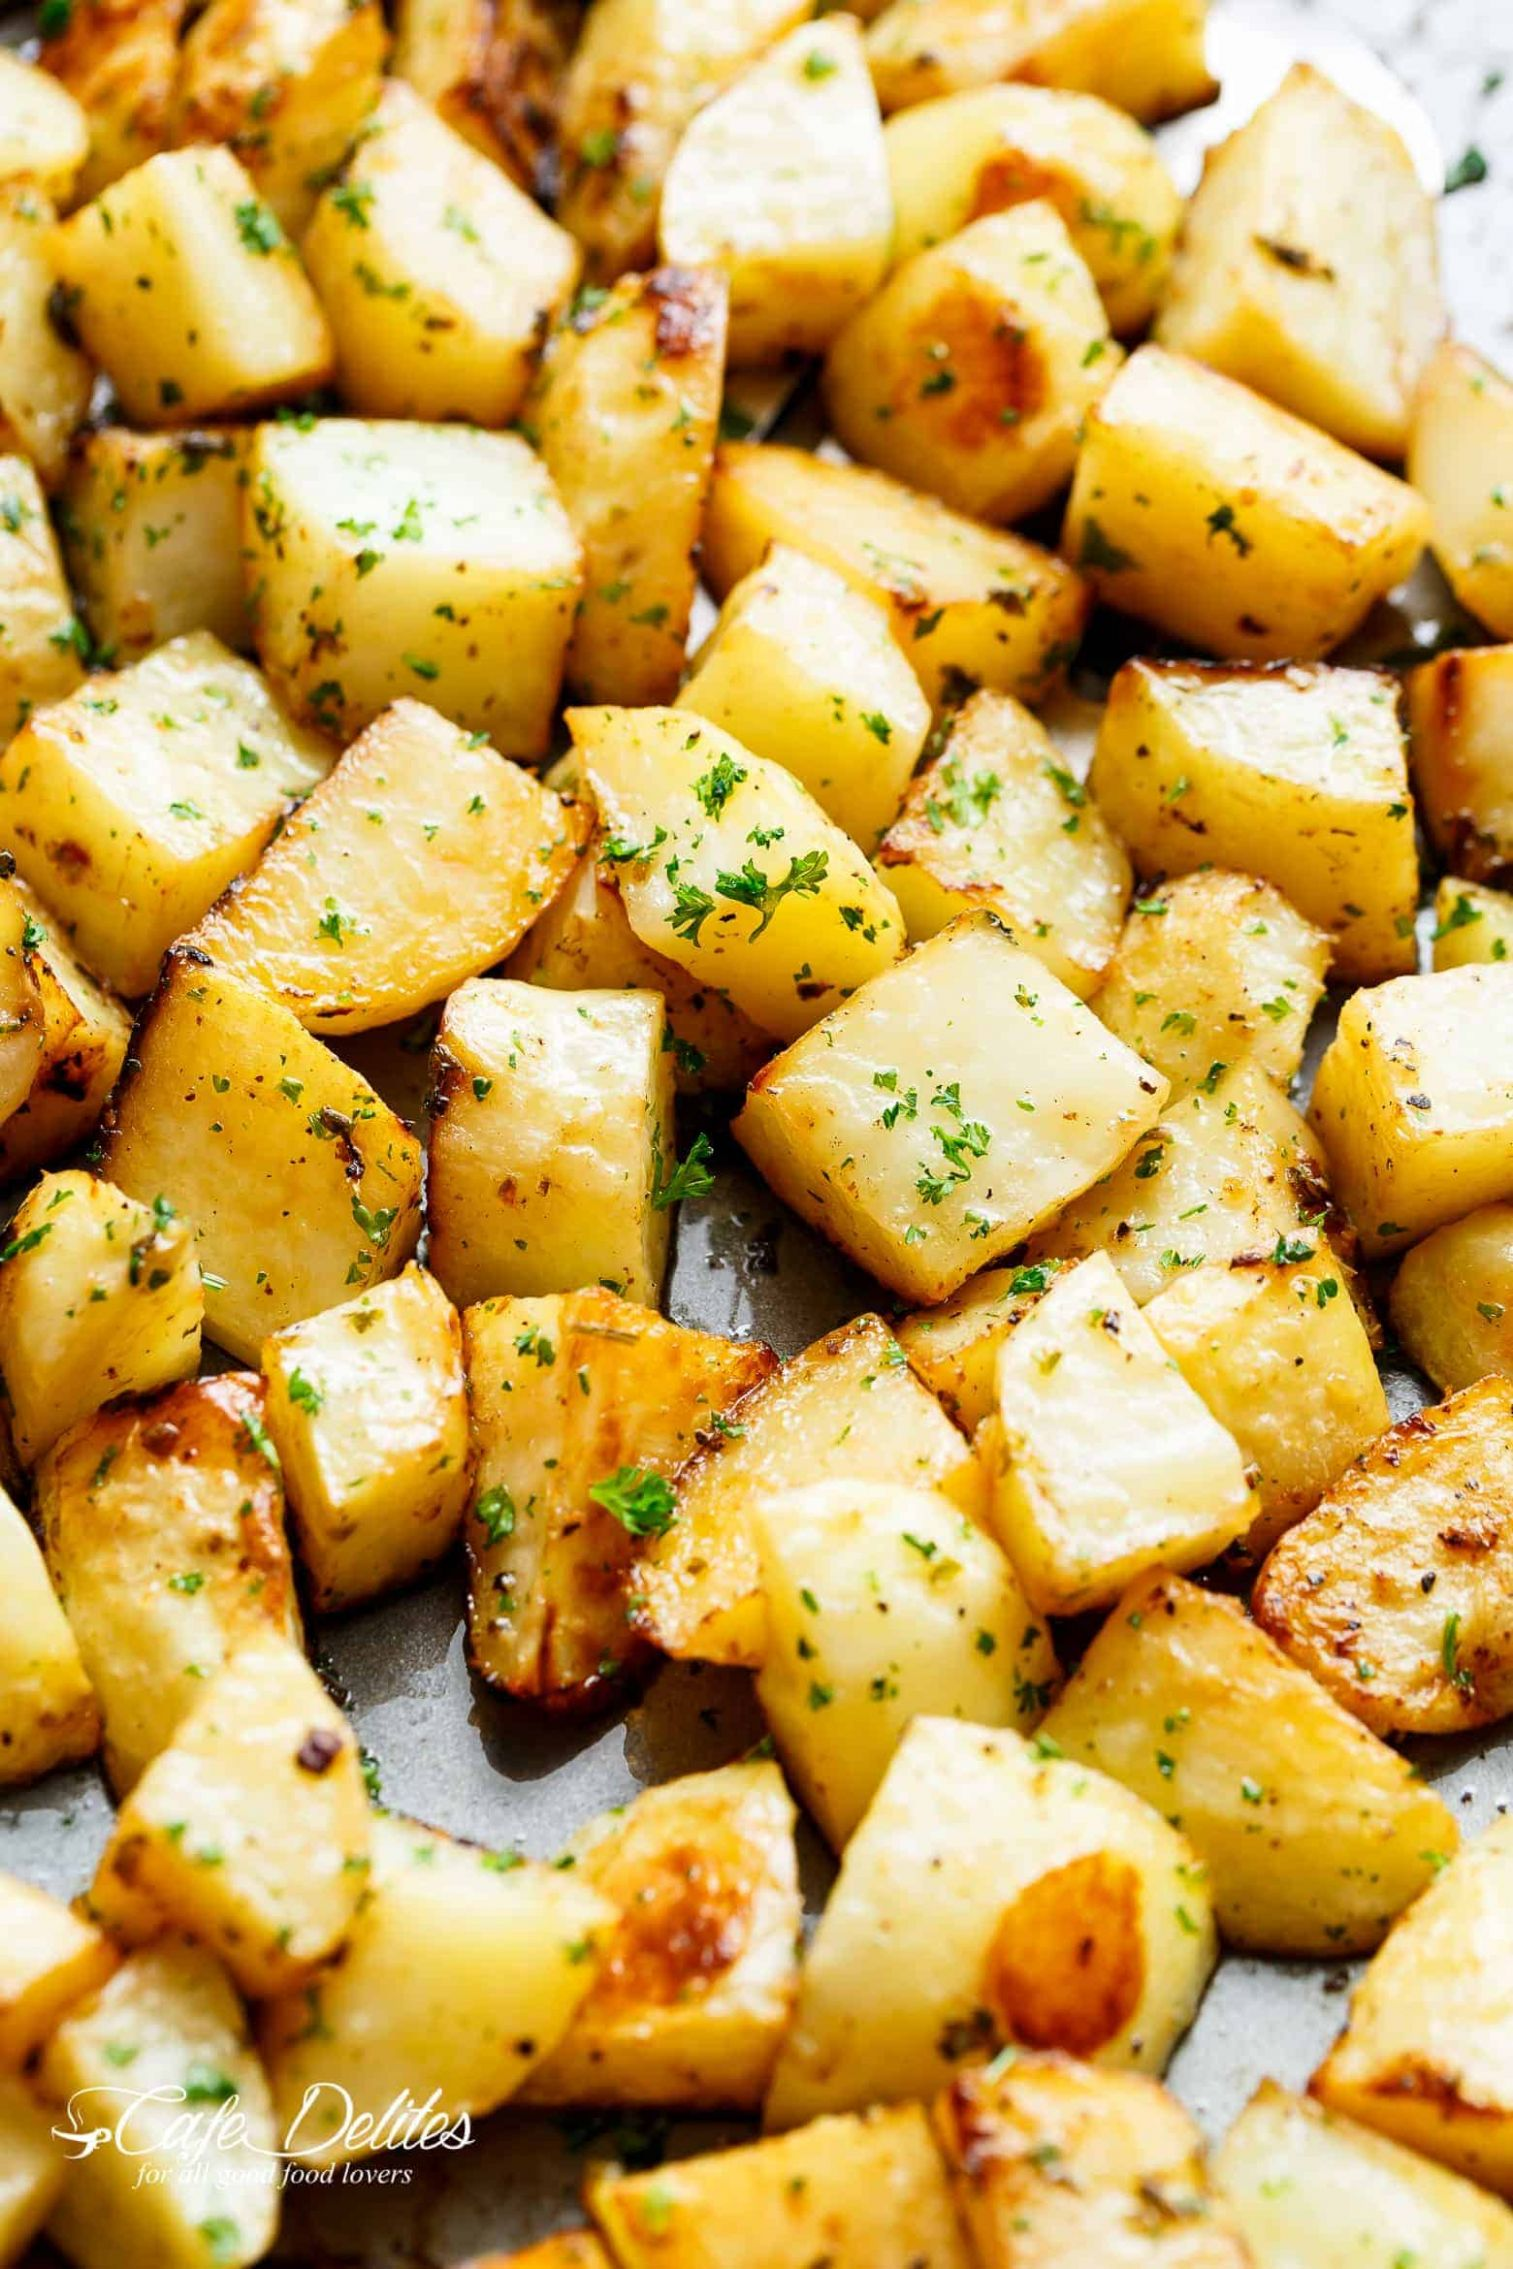 Crispy Garlic Roasted Potatoes - Cafe Delites - Potato Recipes Oven Baked